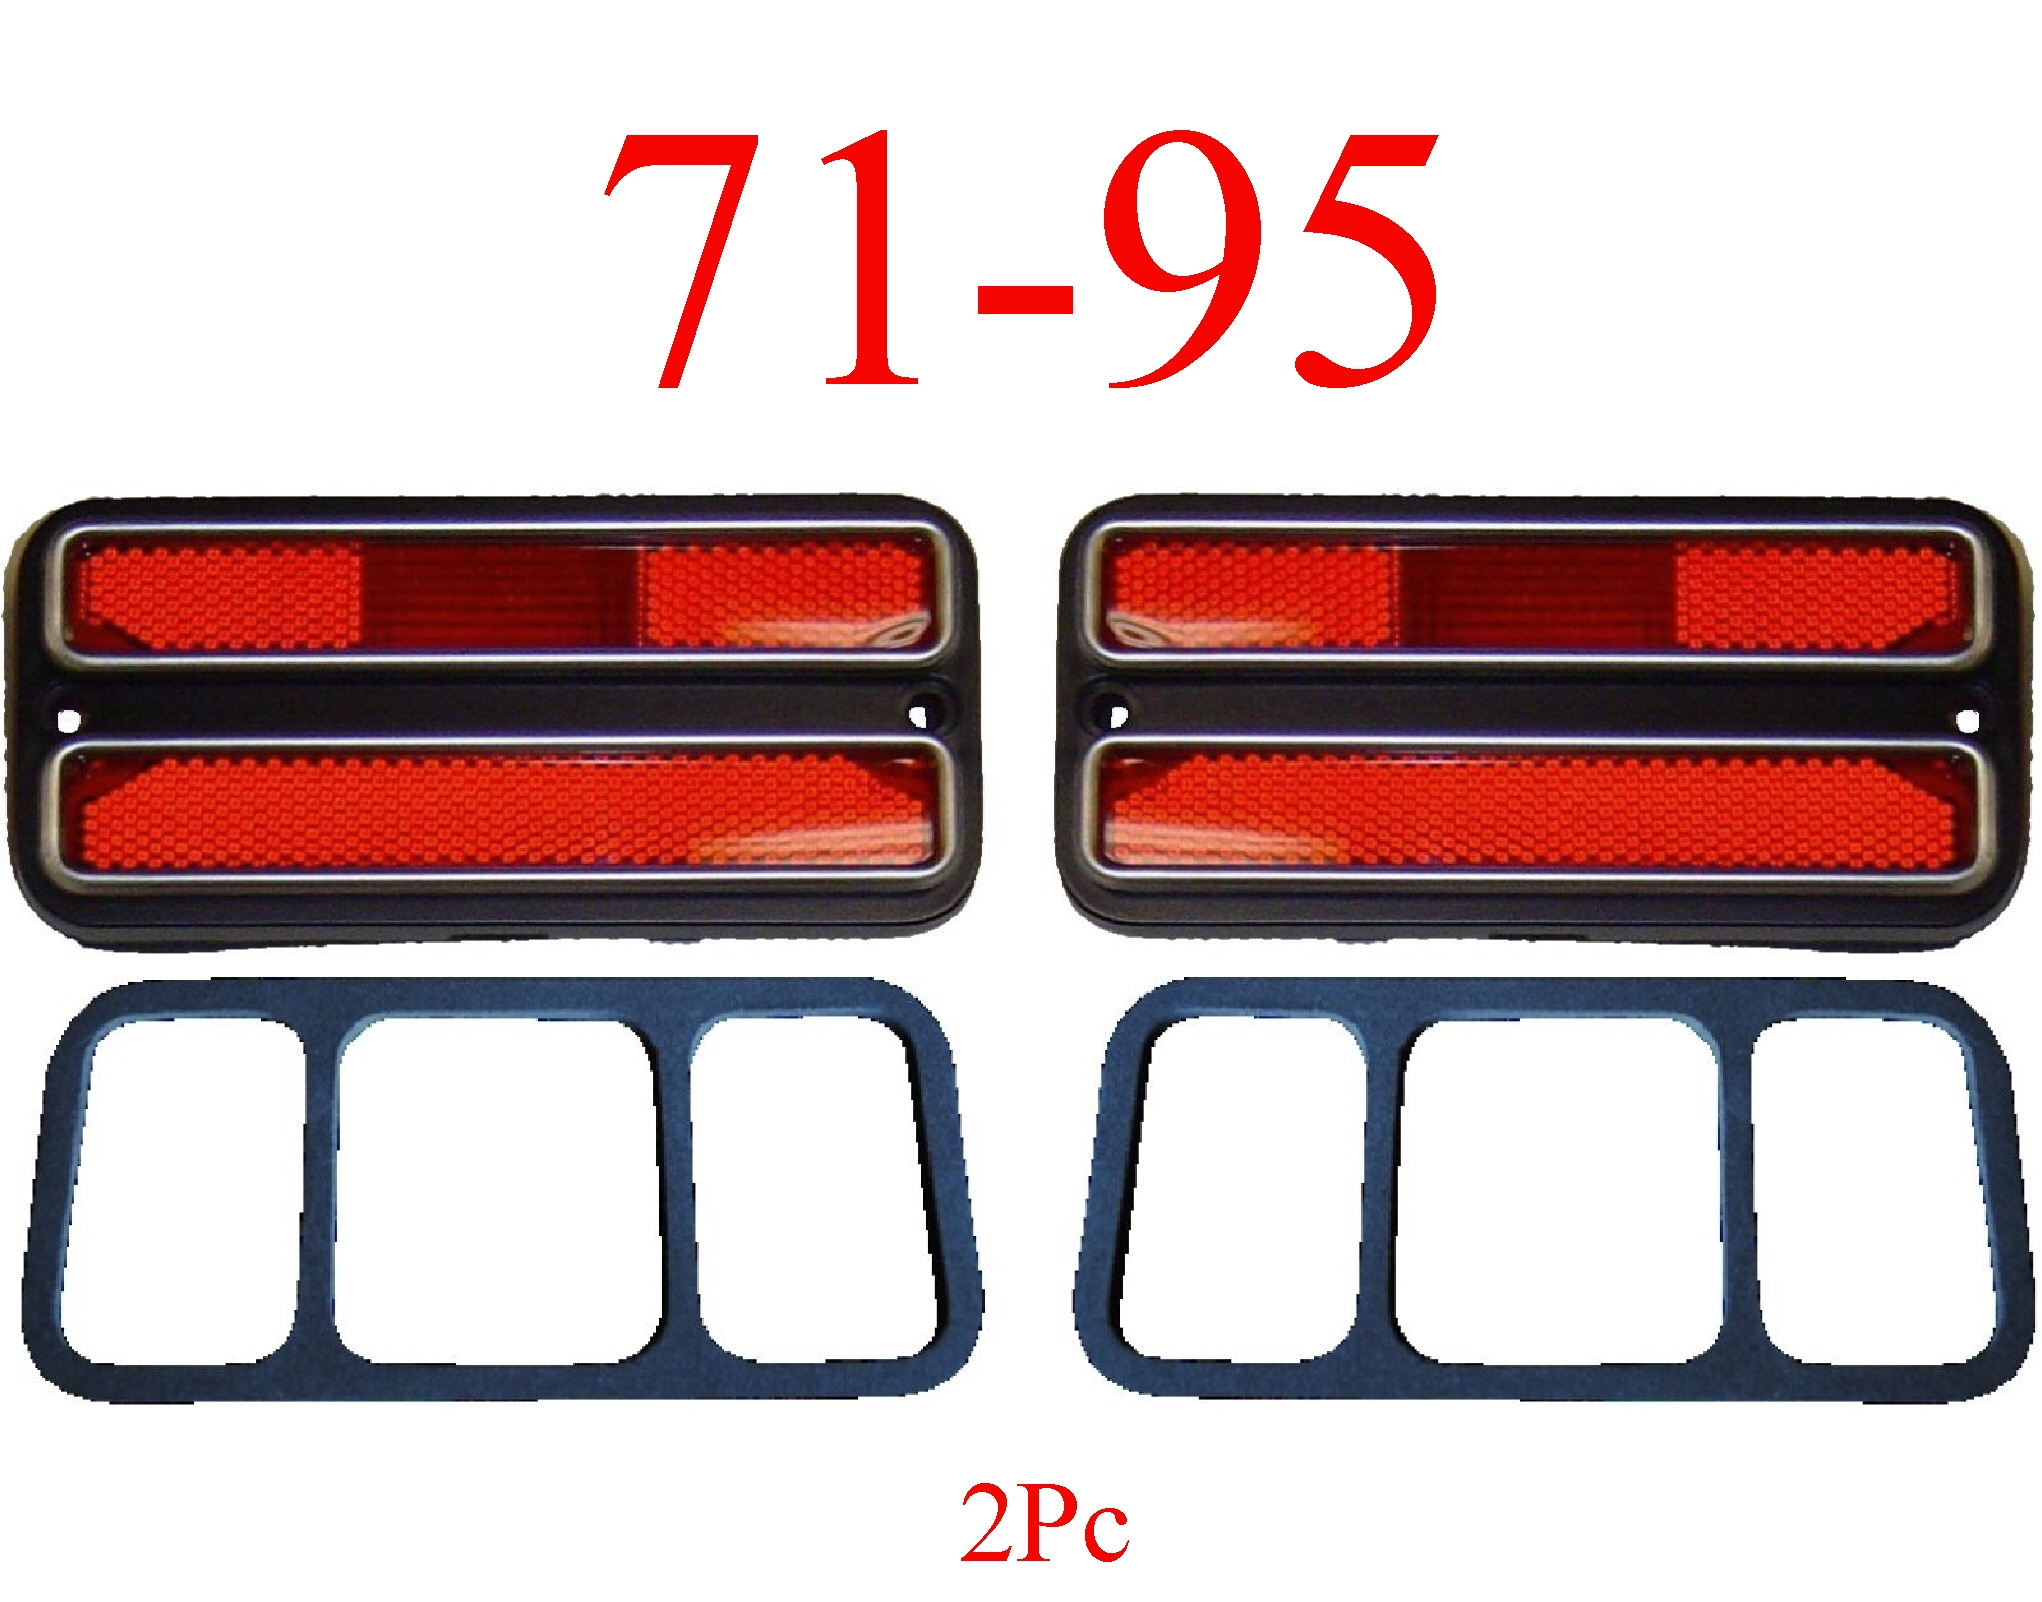 71-95 Chevy Van 2Pc Deluxe Red Rear Side Lights